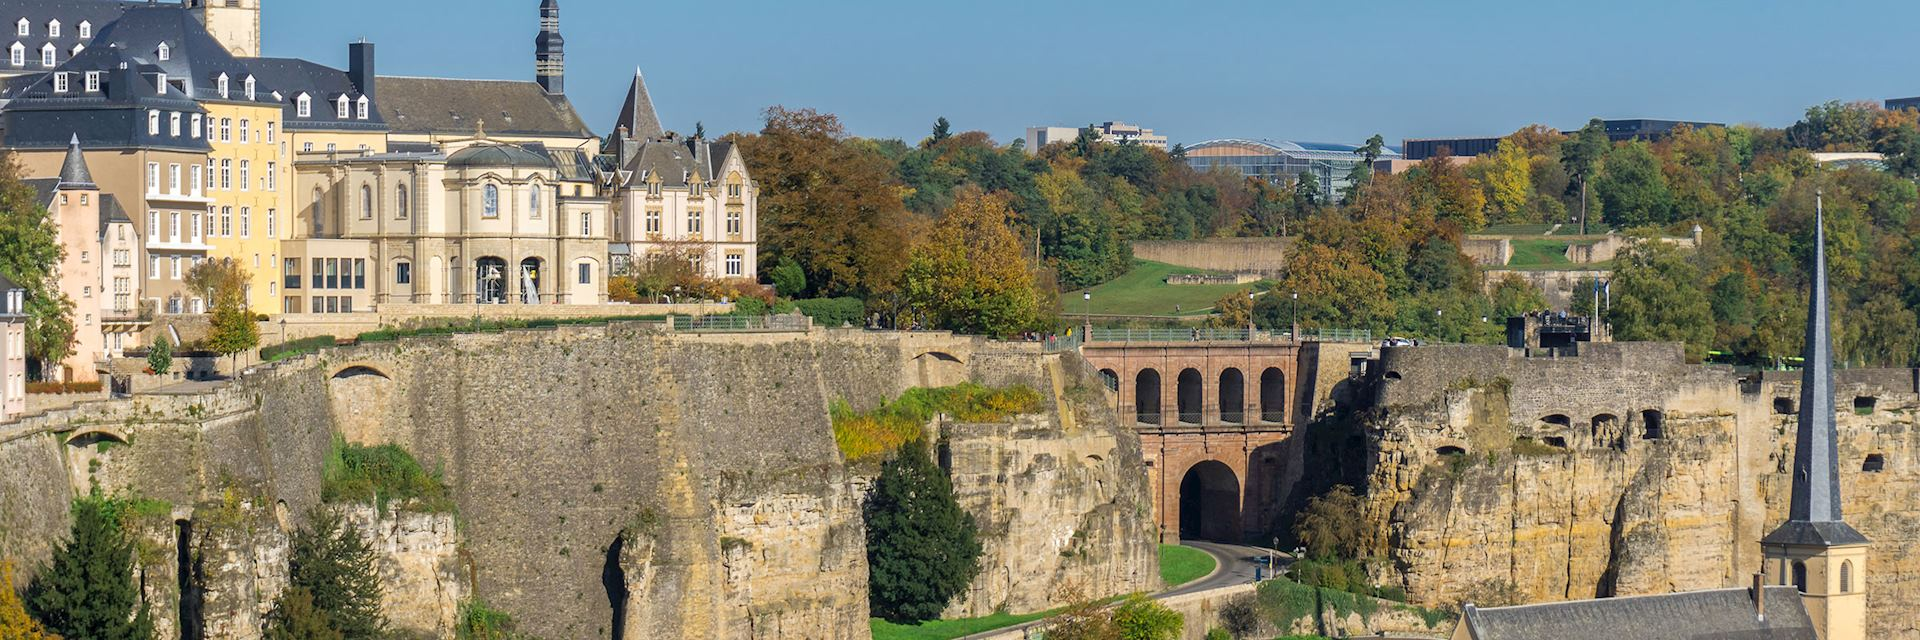 Aerial view of Old Town, Luxembourg City